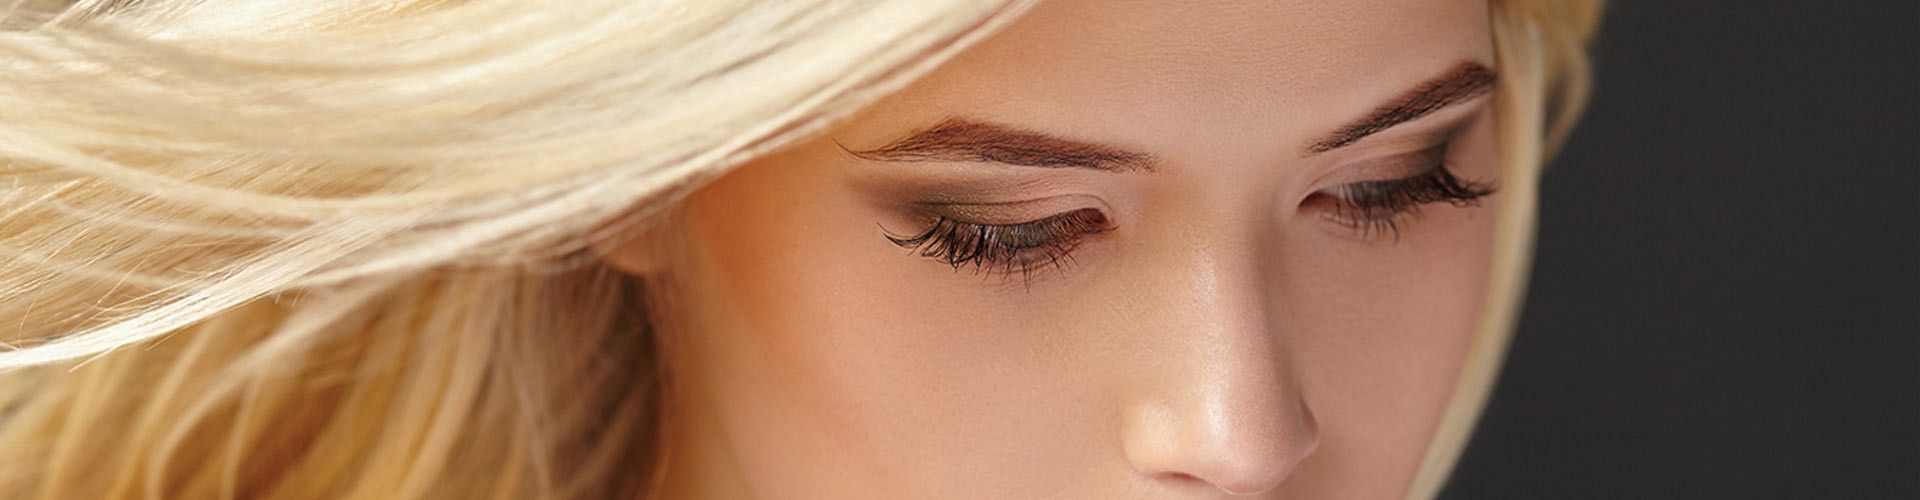 Eyelash Extension Supplies and Accessories | Shipping to all